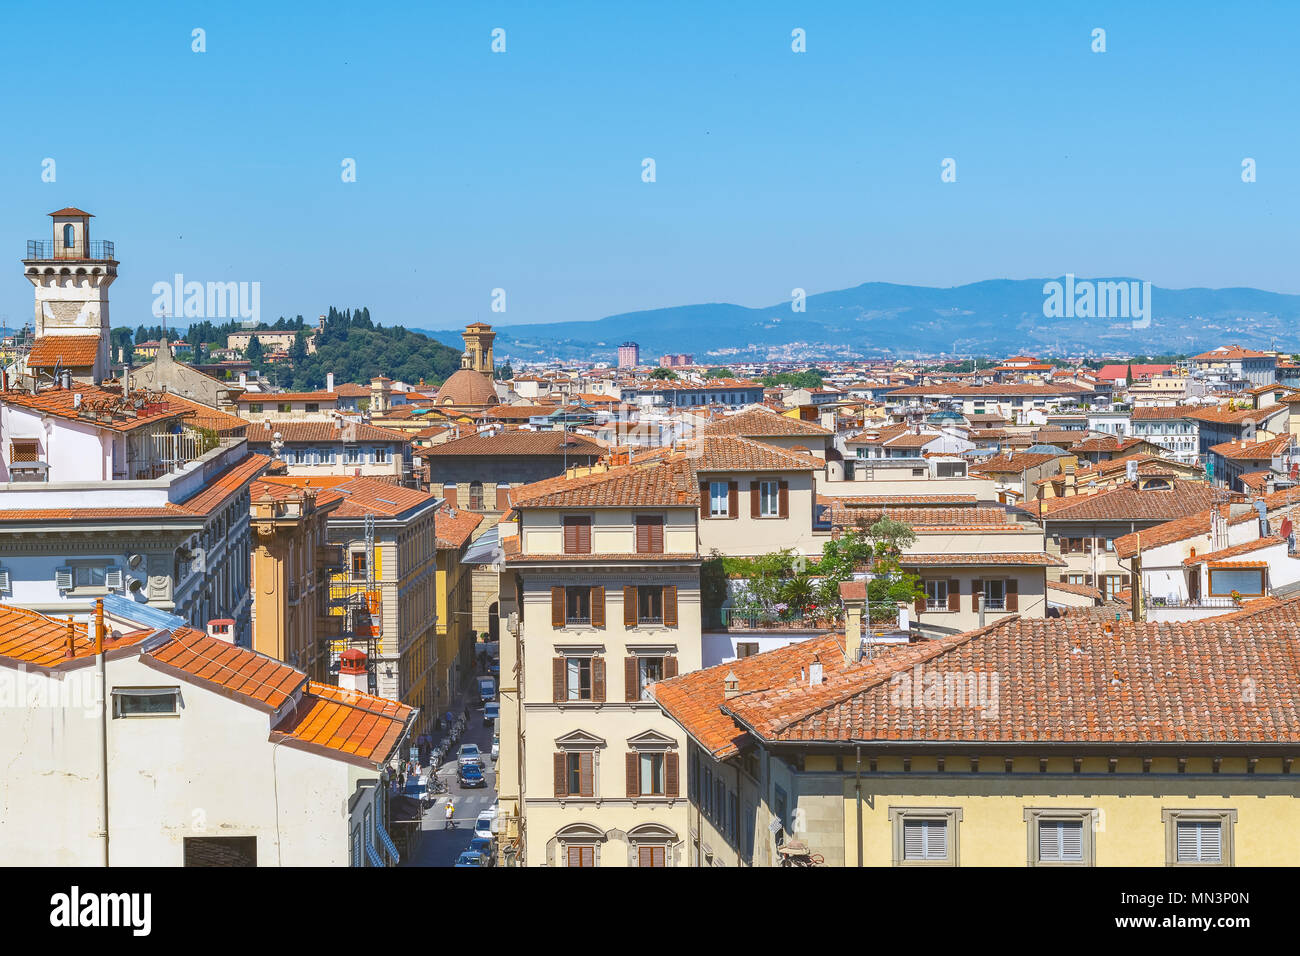 Cityscape of Florence in Italy, featuring red terracotta roofs - Stock Image